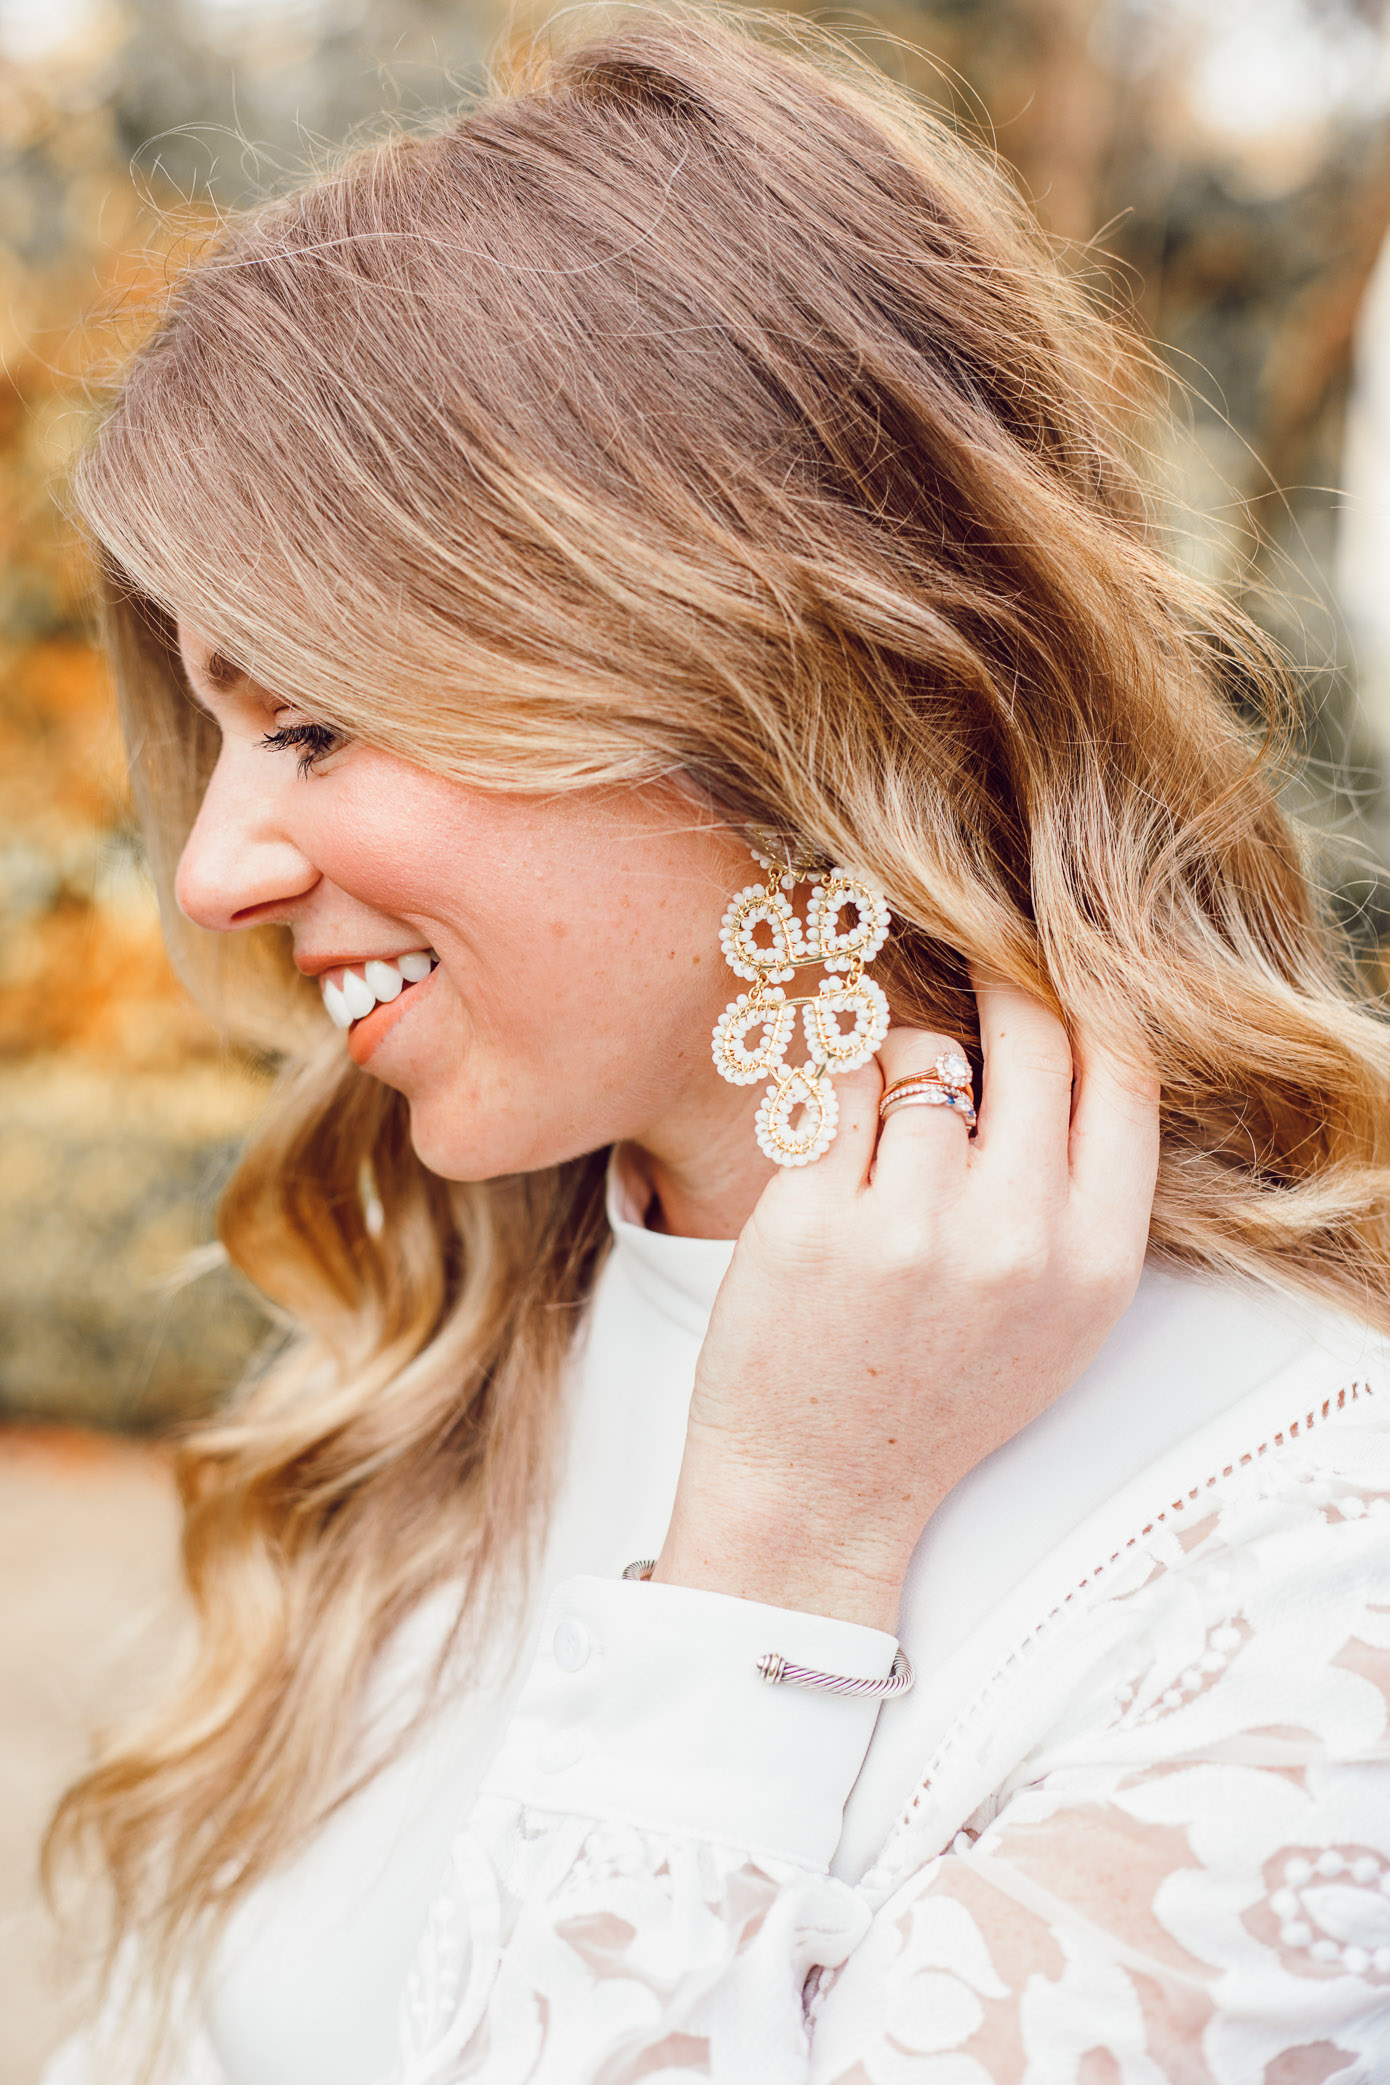 Lisi Lerch Ginger Statement Earrings | White and Gold Statement Earrings | Bridal Style featured on Louella Reese